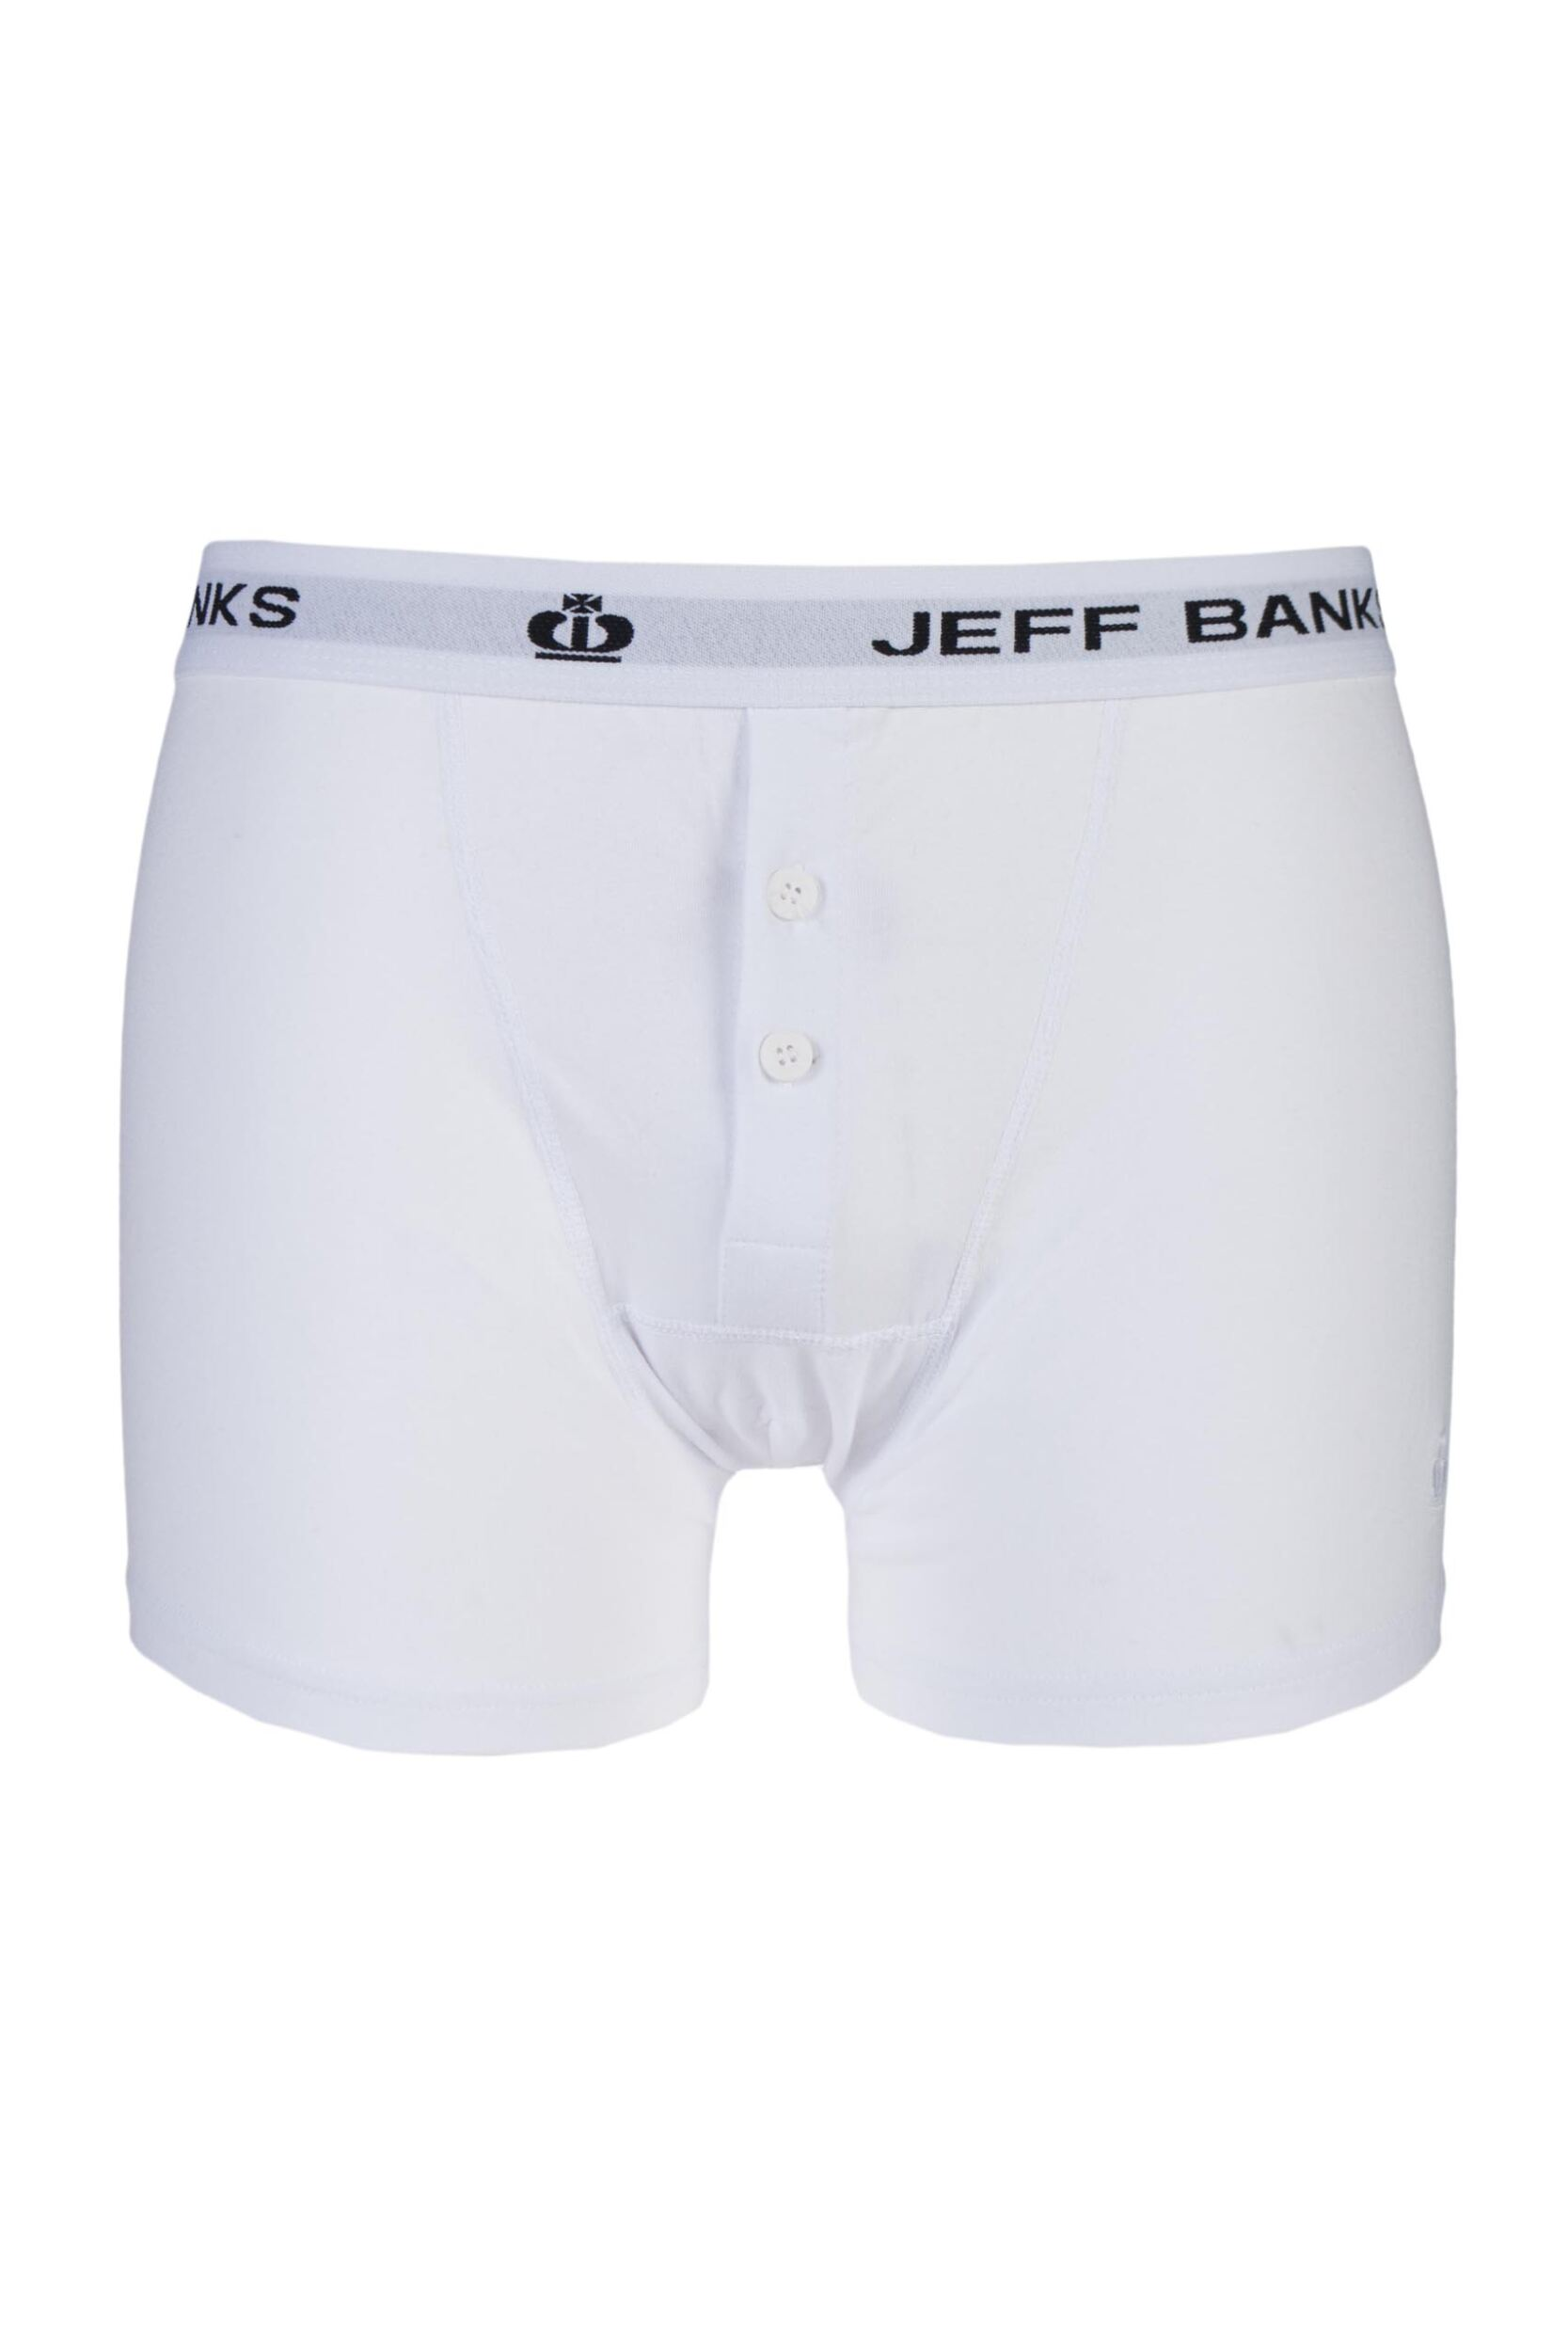 1 pack white leeds buttoned* cotton boxer shorts men's large - jeff banks